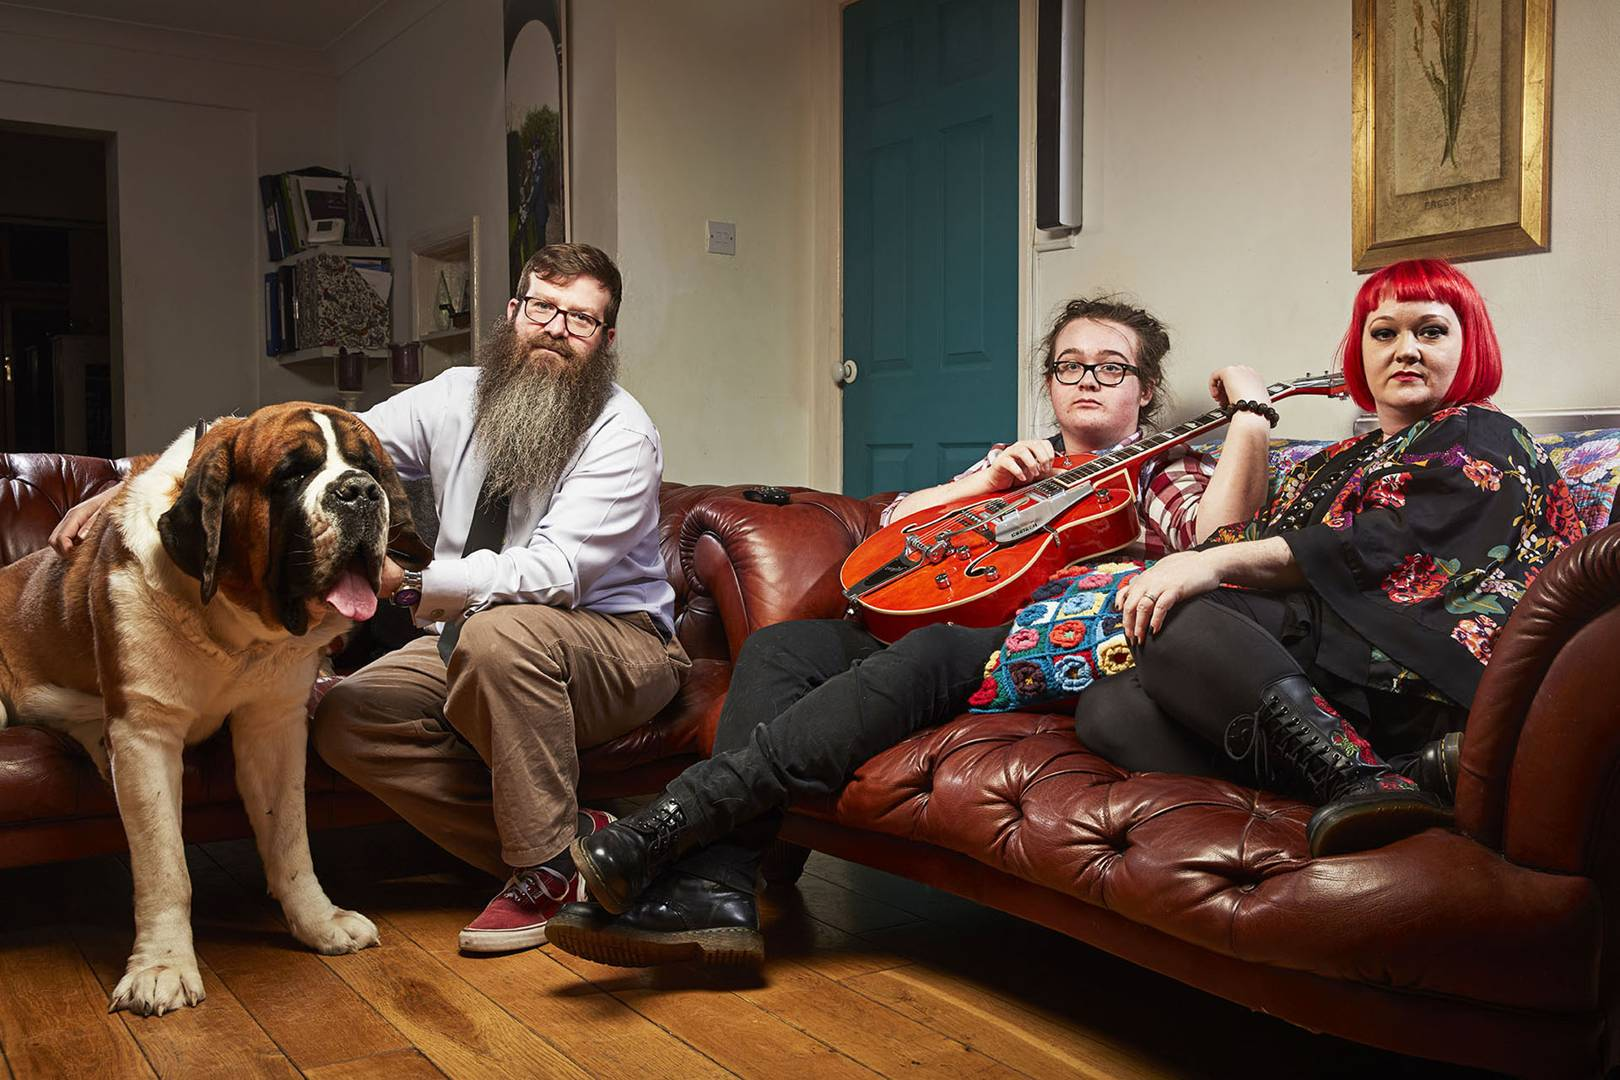 Gogglebox Families & Jobs IRL: What They Do Away From The Telly